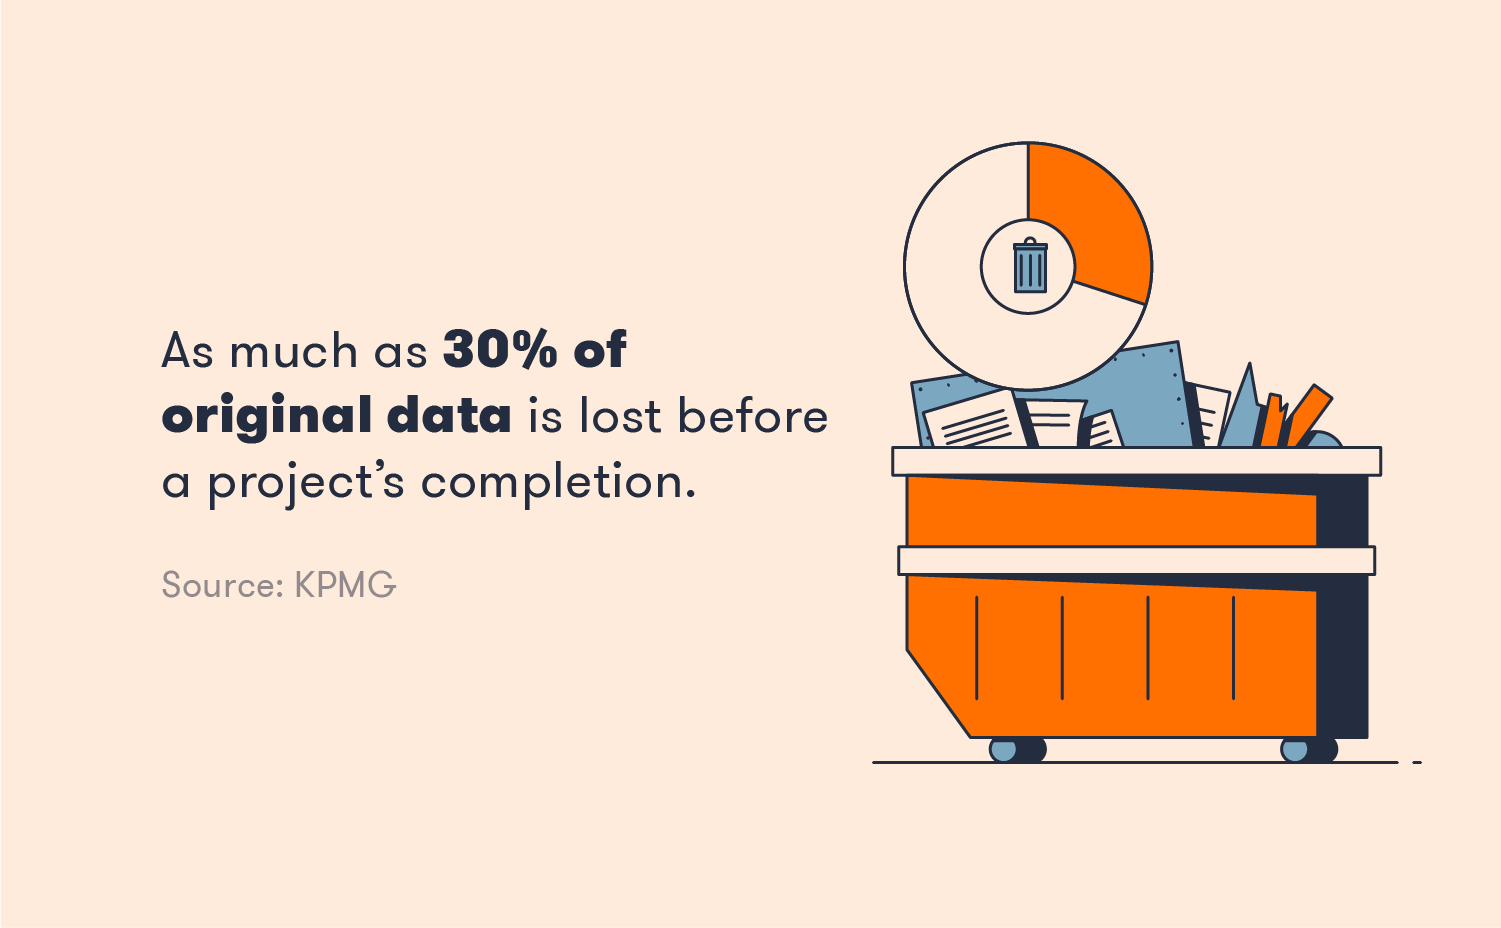 30% of project data is lost before completion.